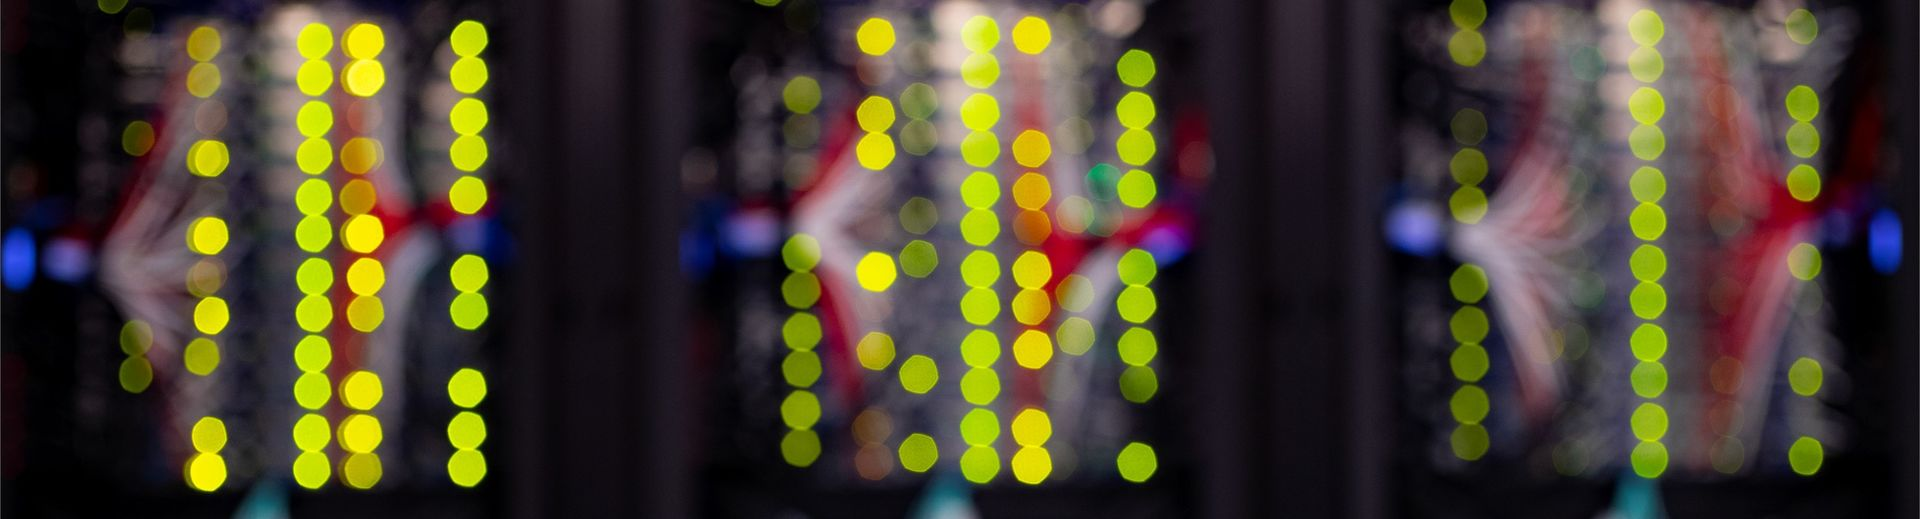 Blurred image of the back of computer servers resulting in a very primary colorscape with columns of bright yellow circles.